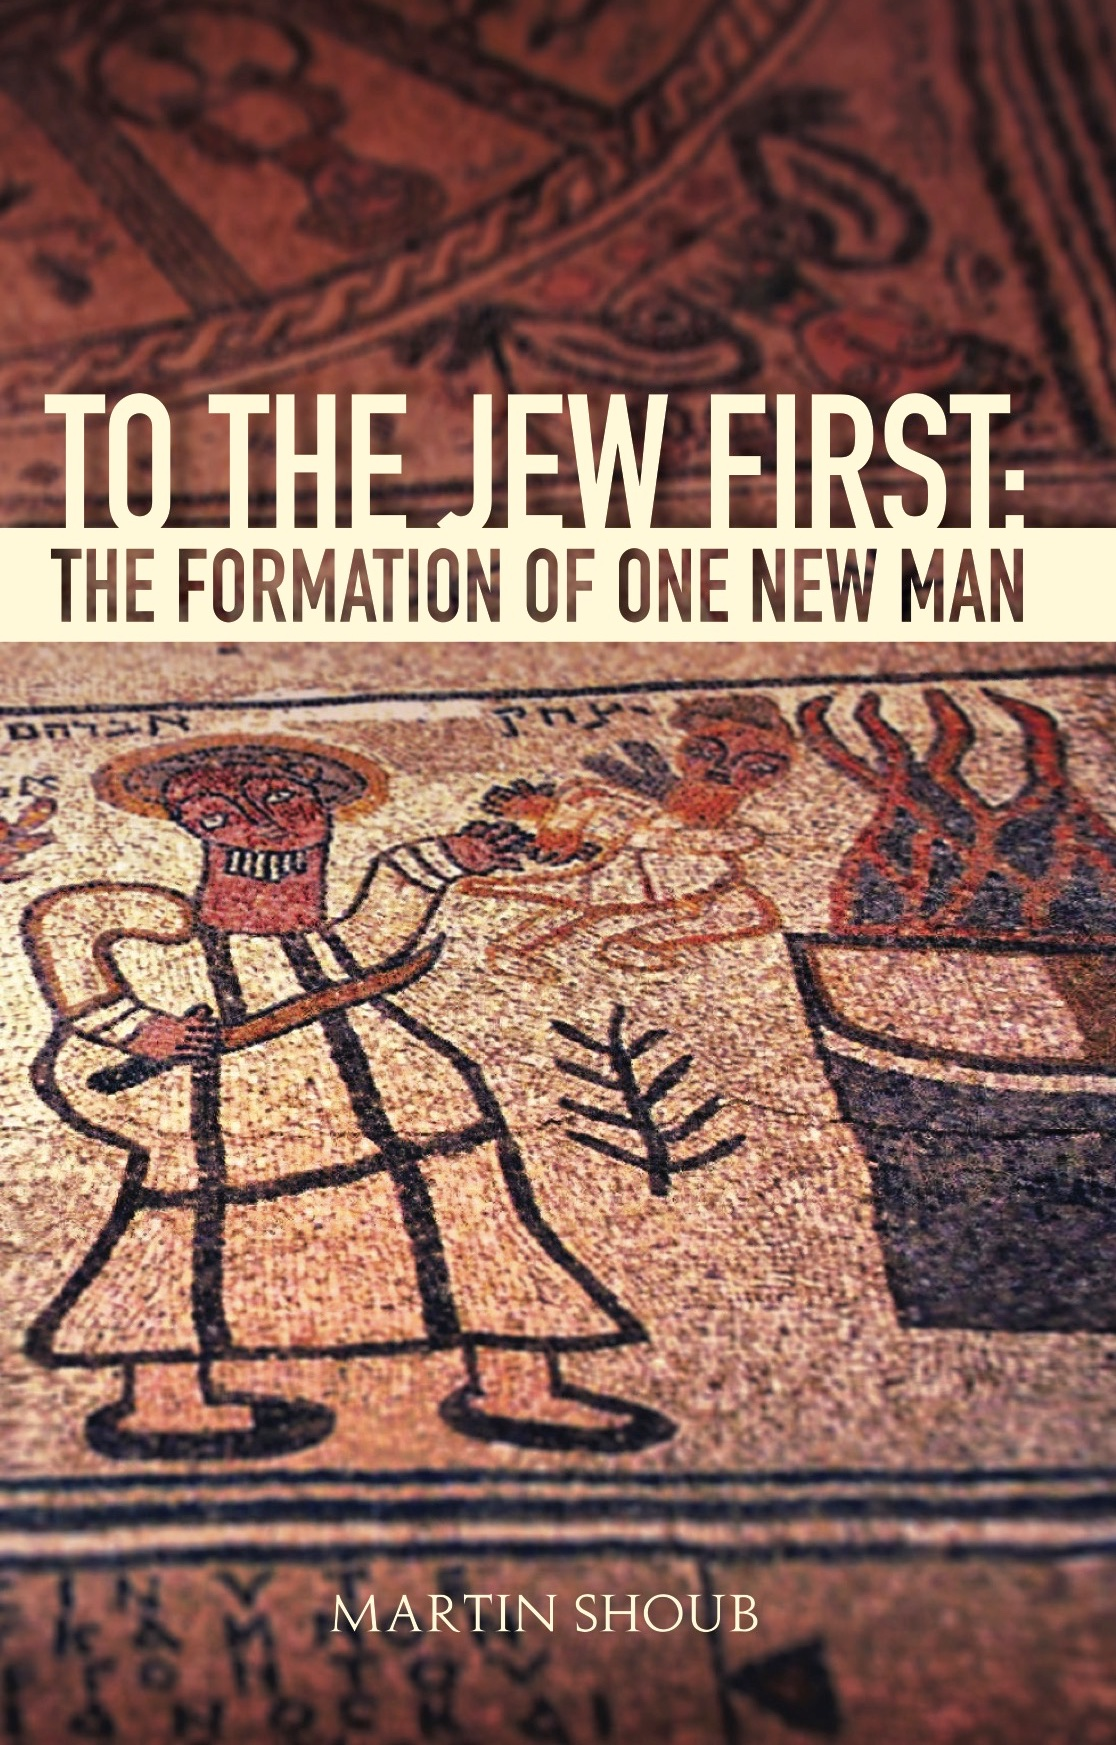 To The Jew First: The Formation of One New Man